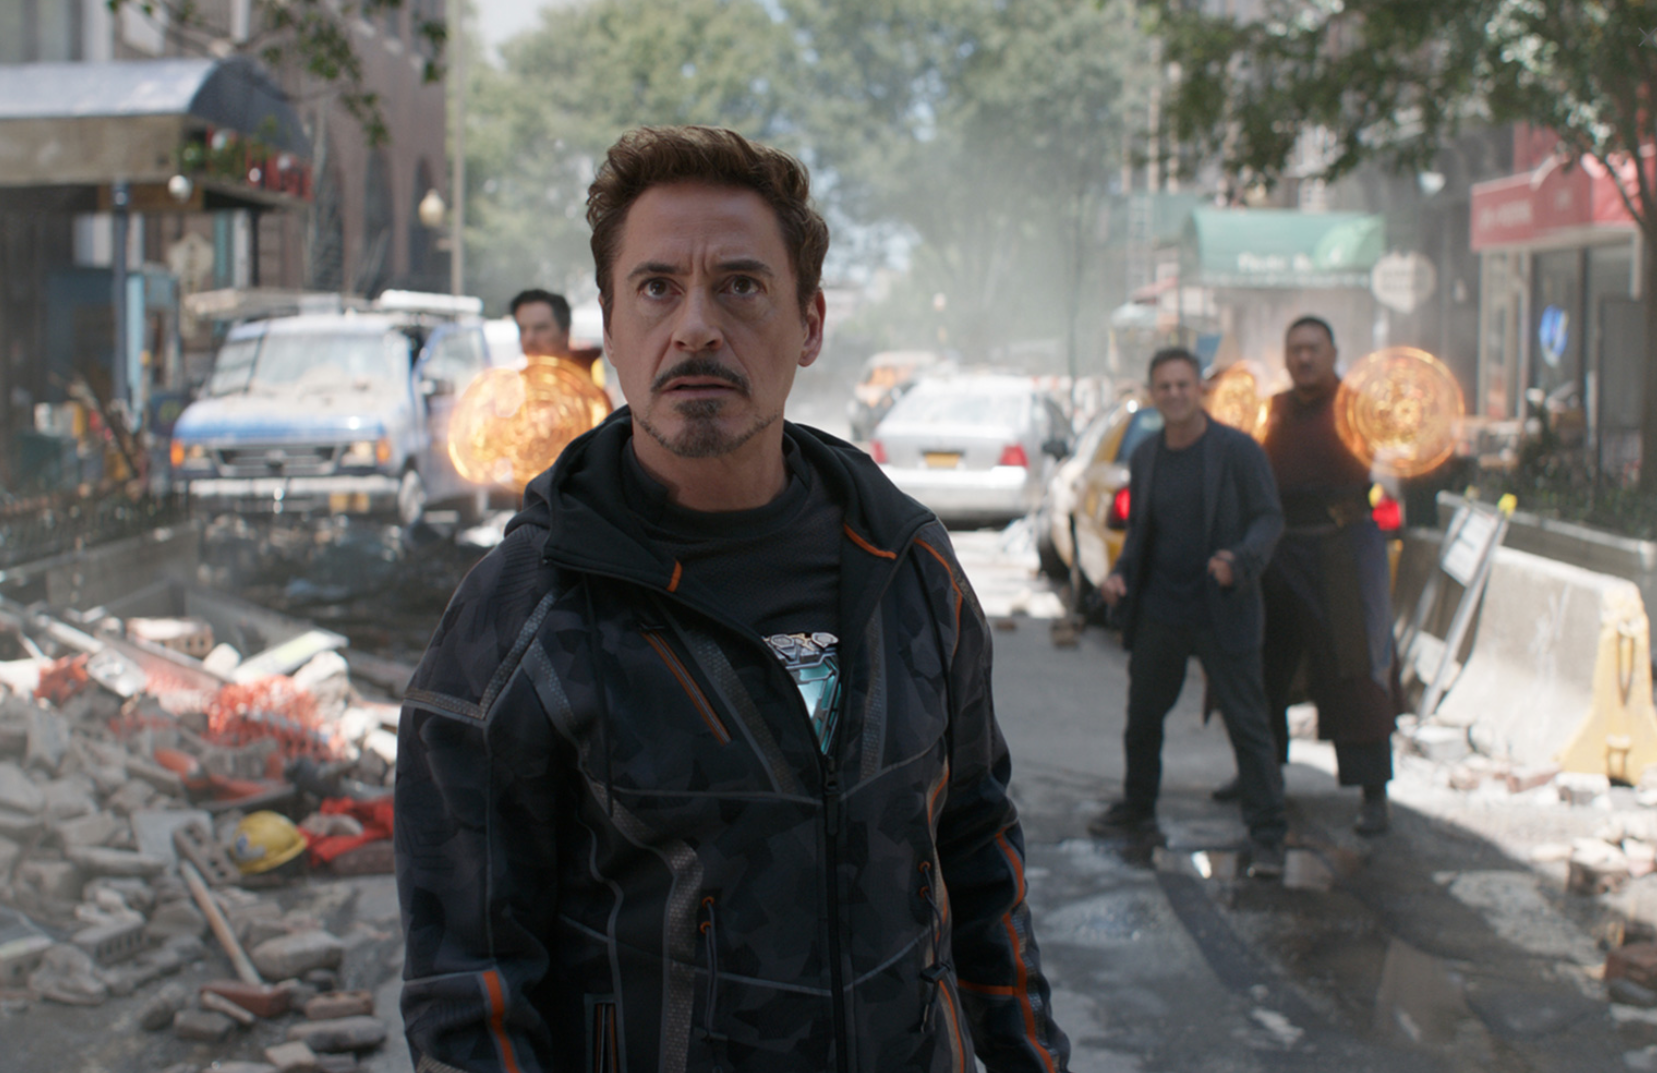 'Avengers: Infinity War' Used Steven Soderbergh for Inspiration and Shot With A New Kind of IMAX Camera